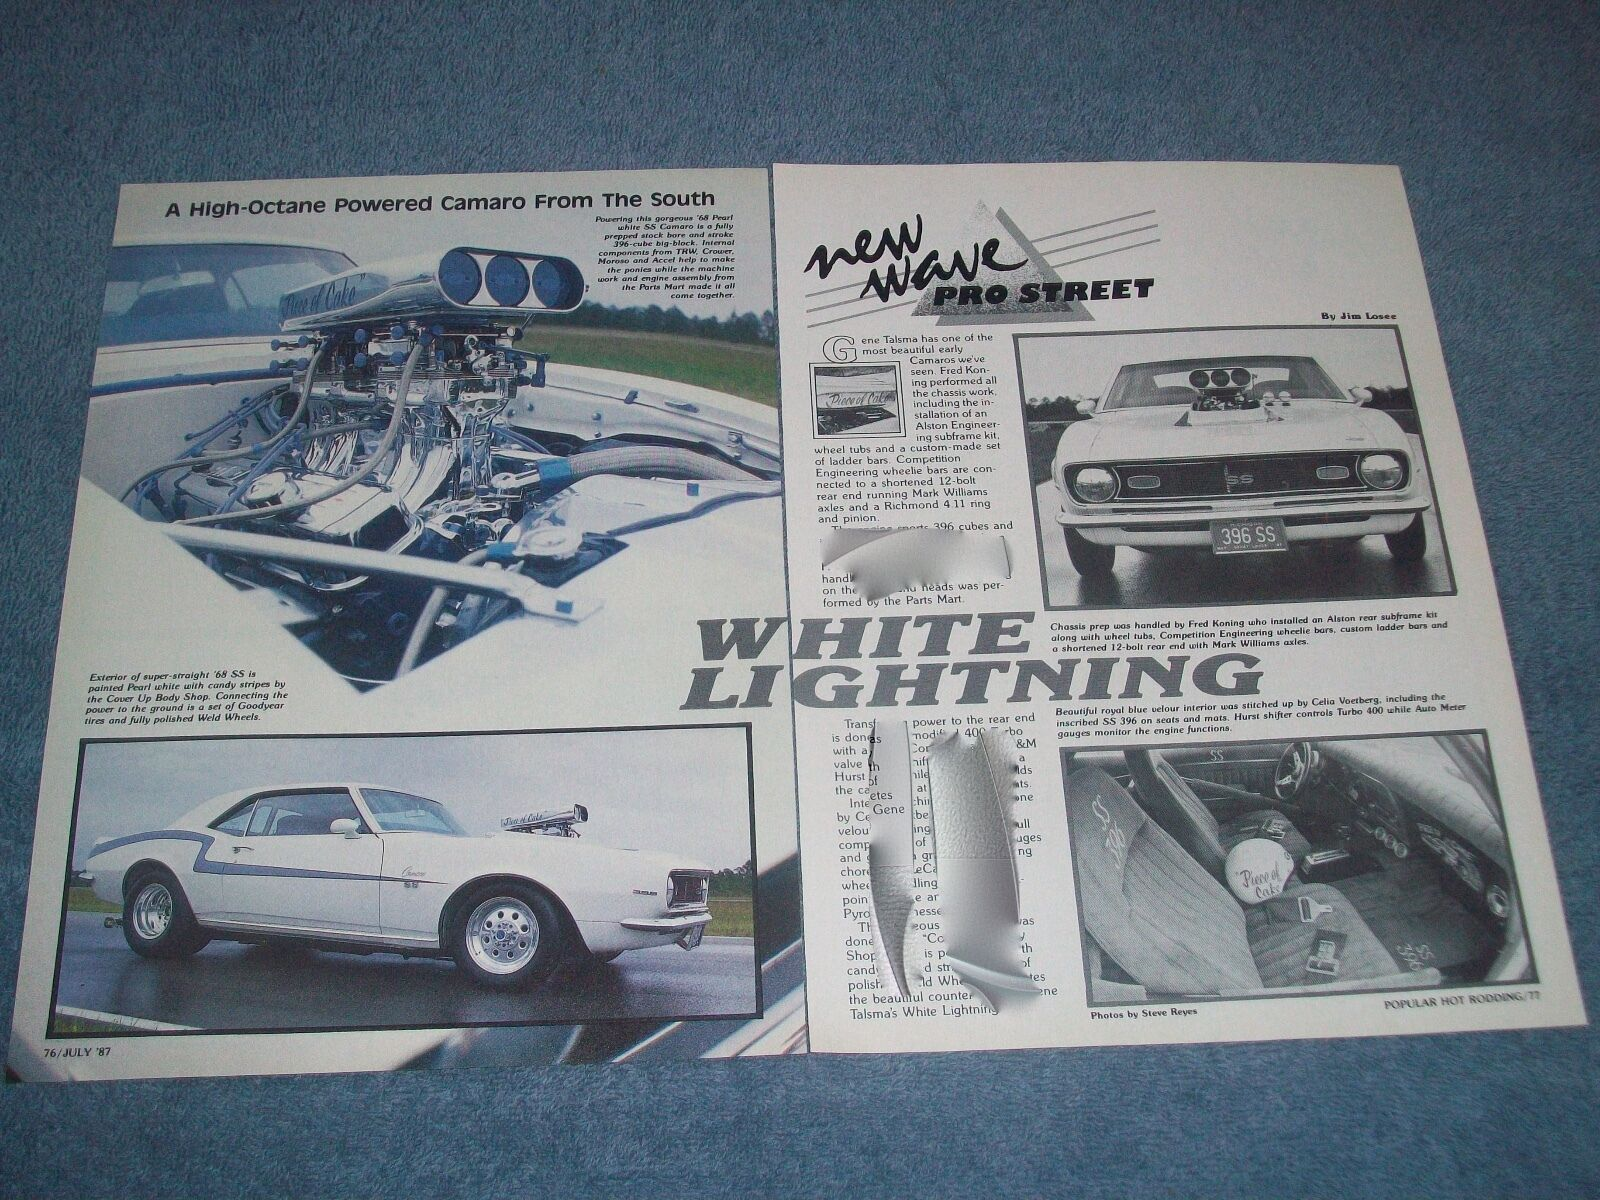 1968 Chevy Camaro Ss Vintage Pro Street Article White Lightning Chevrolet Rs Dub Edition 1 Of 1only Available